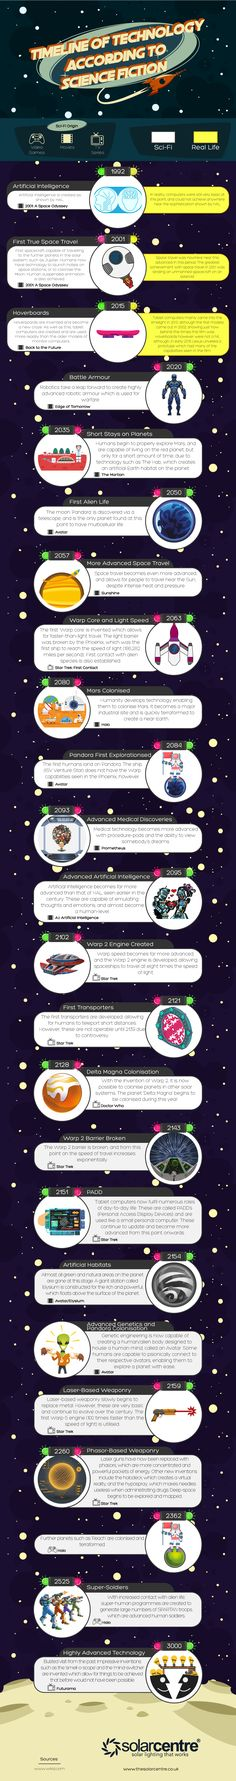 How Technology Will Change According to Science Fiction #Infographic #Science #Technology